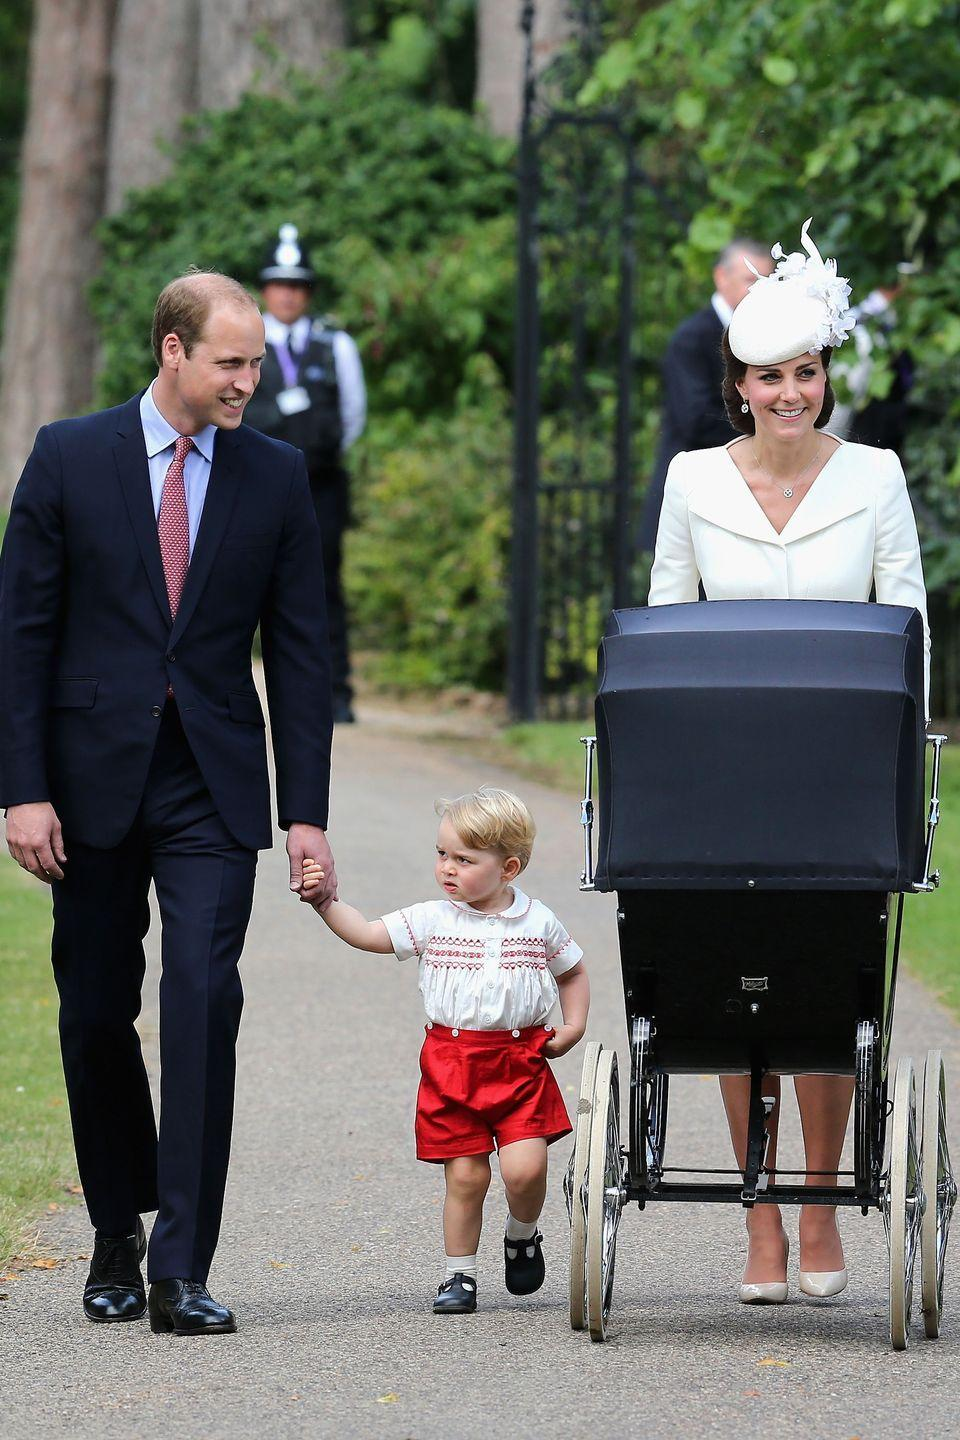 "<p>Duchess Kate pushes Princess Charlotte in a stroller as her family arrives at the Church of St. Mary Magdalene for <a href=""https://www.harpersbazaar.com/celebrity/latest/a22075363/kate-middleton-dress-prince-louis-christening-compared-prince-george-princess-charlotte/"" rel=""nofollow noopener"" target=""_blank"" data-ylk=""slk:Charlotte's christening"" class=""link rapid-noclick-resp"">Charlotte's christening</a>. </p>"